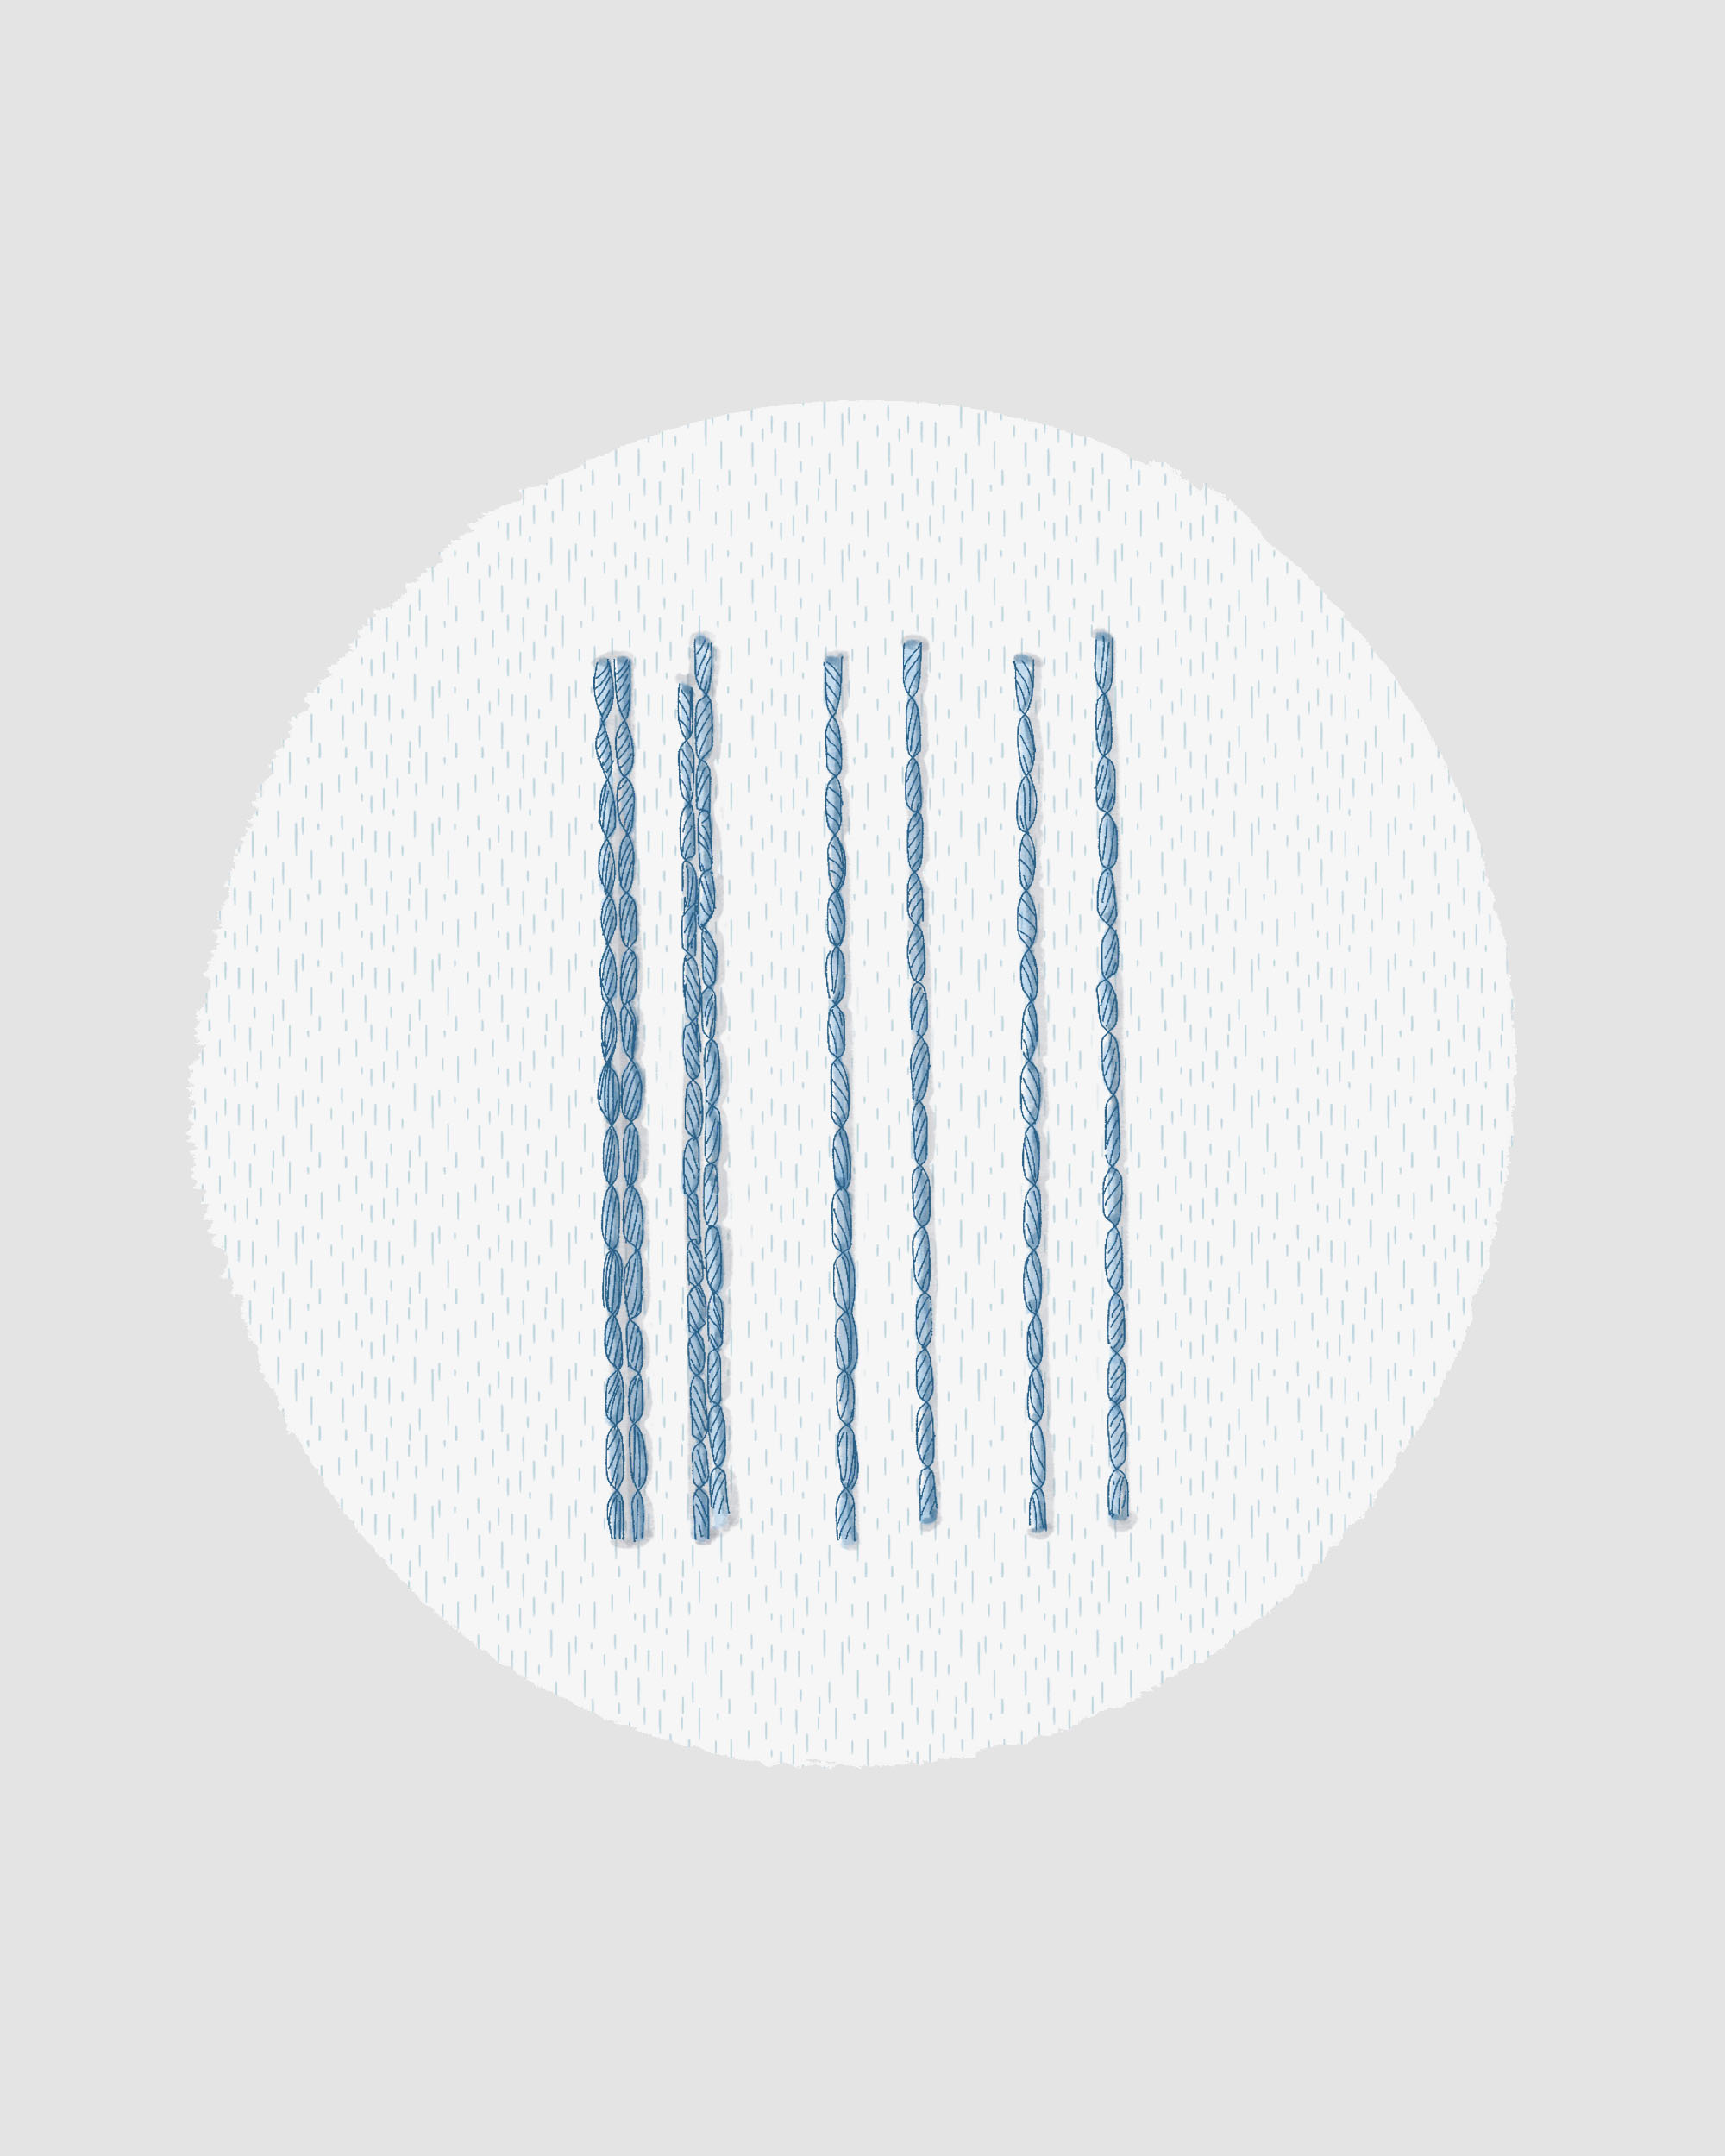 back stitch in embroidery